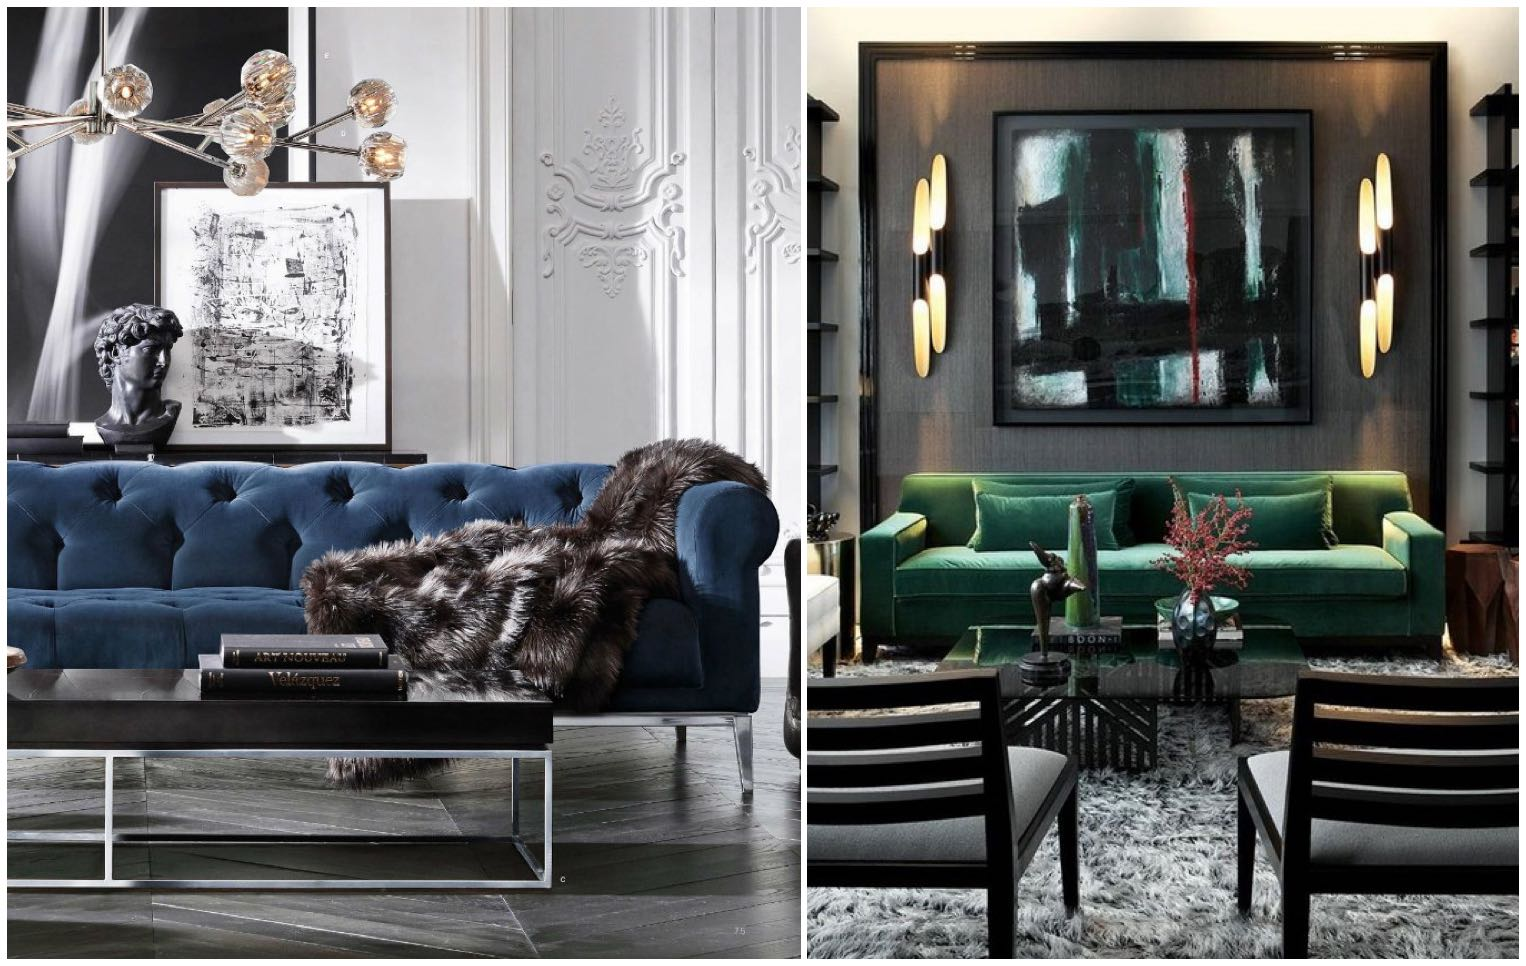 Captivating Velvet In Interior Design: Luxury Mixed With Modern Style Interior Design